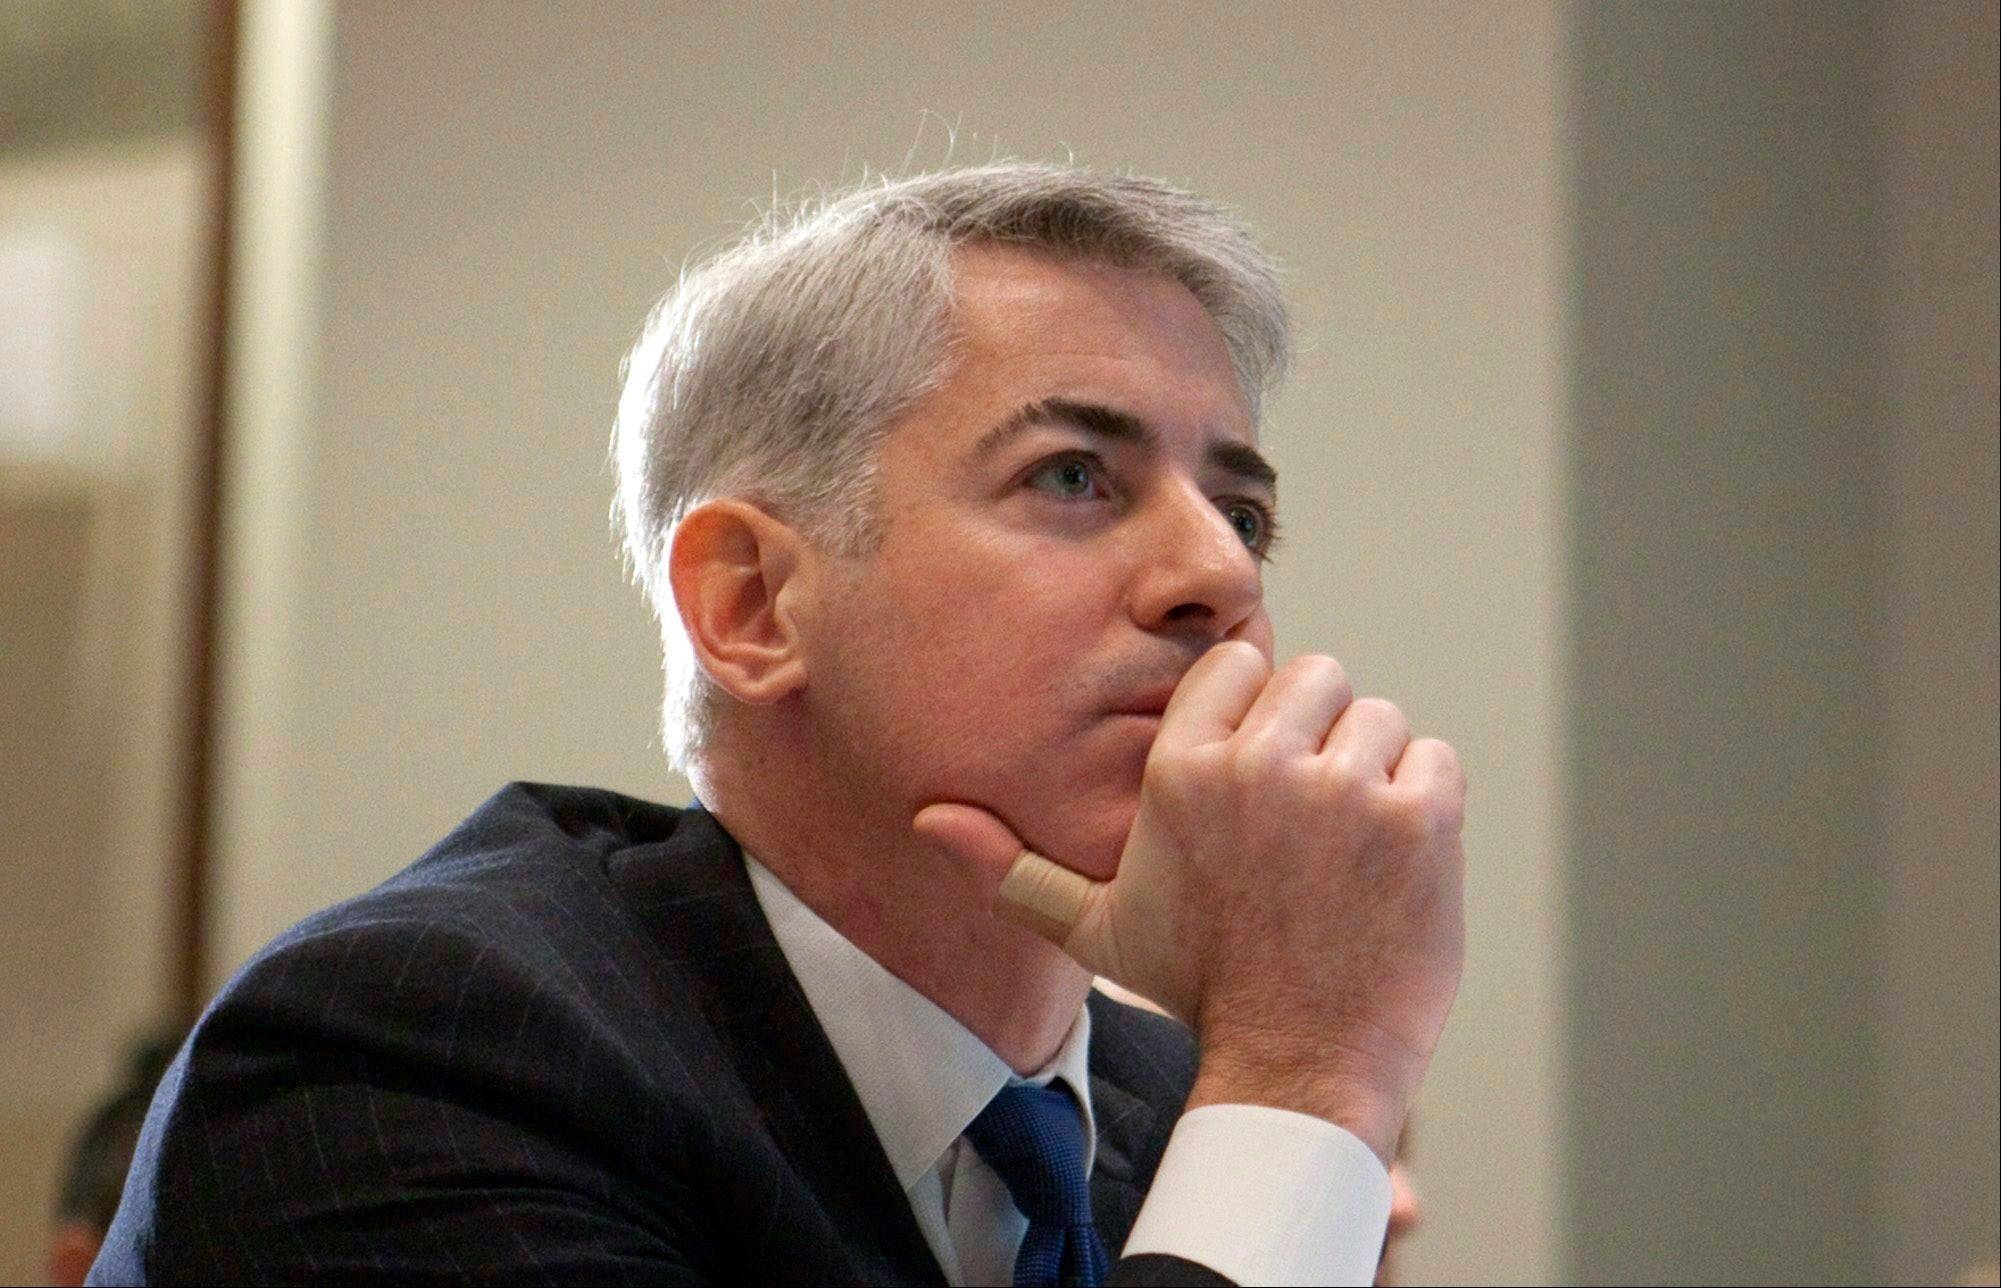 William Ackman has resigned from J.C. Penney Co.�s board as part of a deal to resolve an unusually public battle between the activist investor and the struggling department store operator.